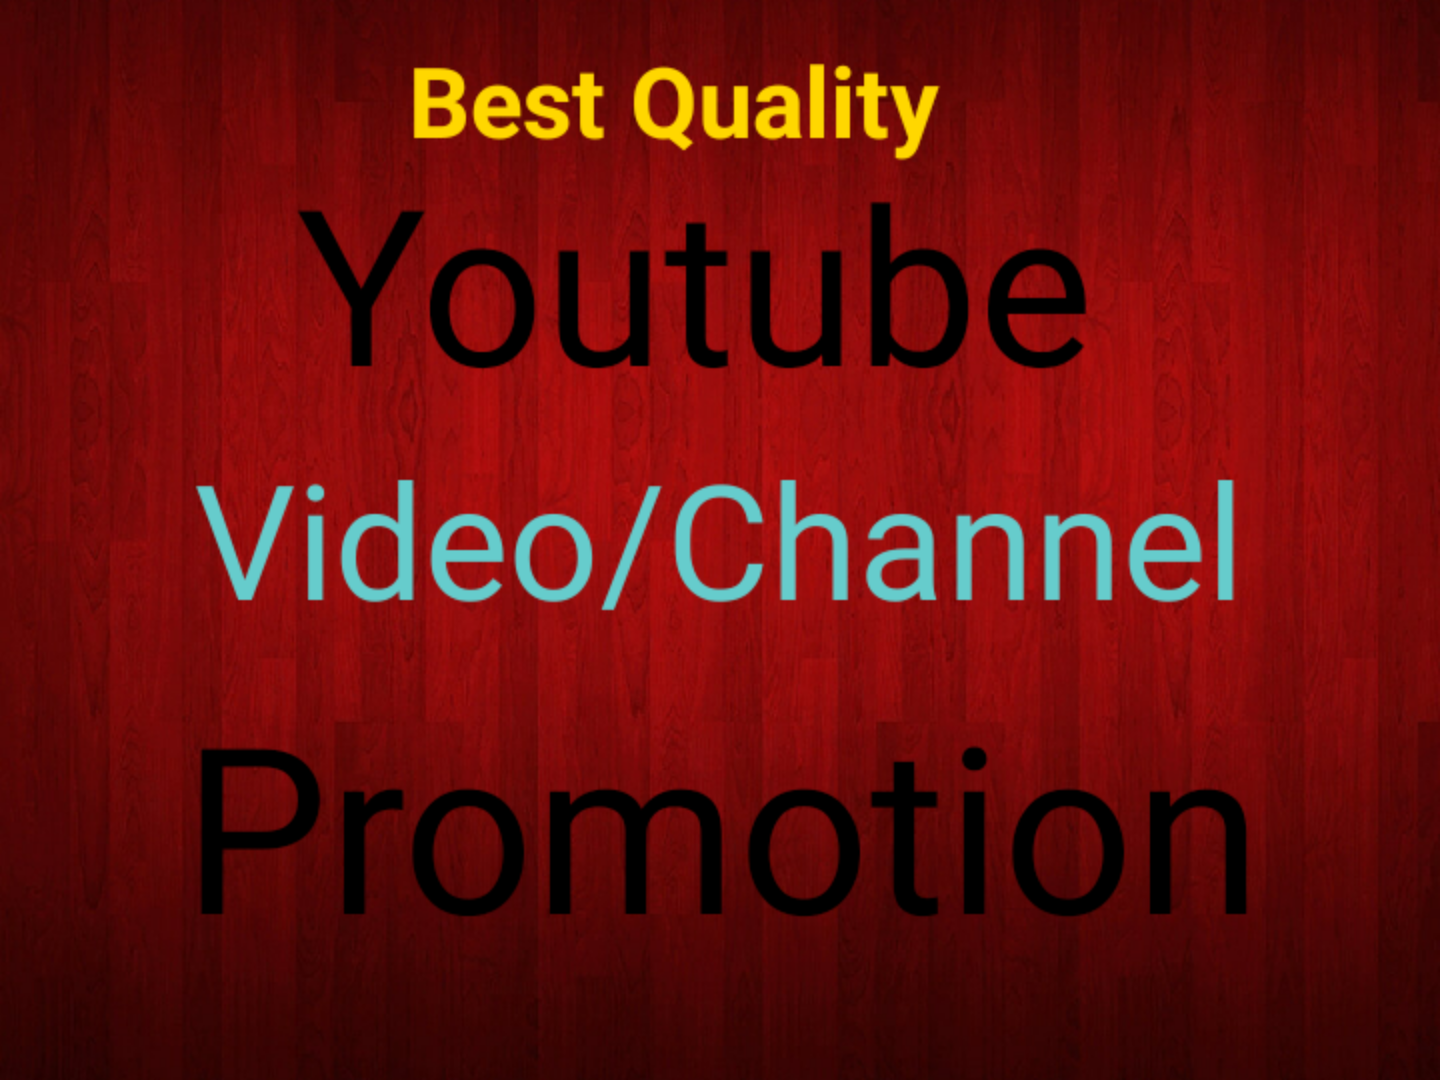 Super fast YouTube video promotion and marketing with extra bonus